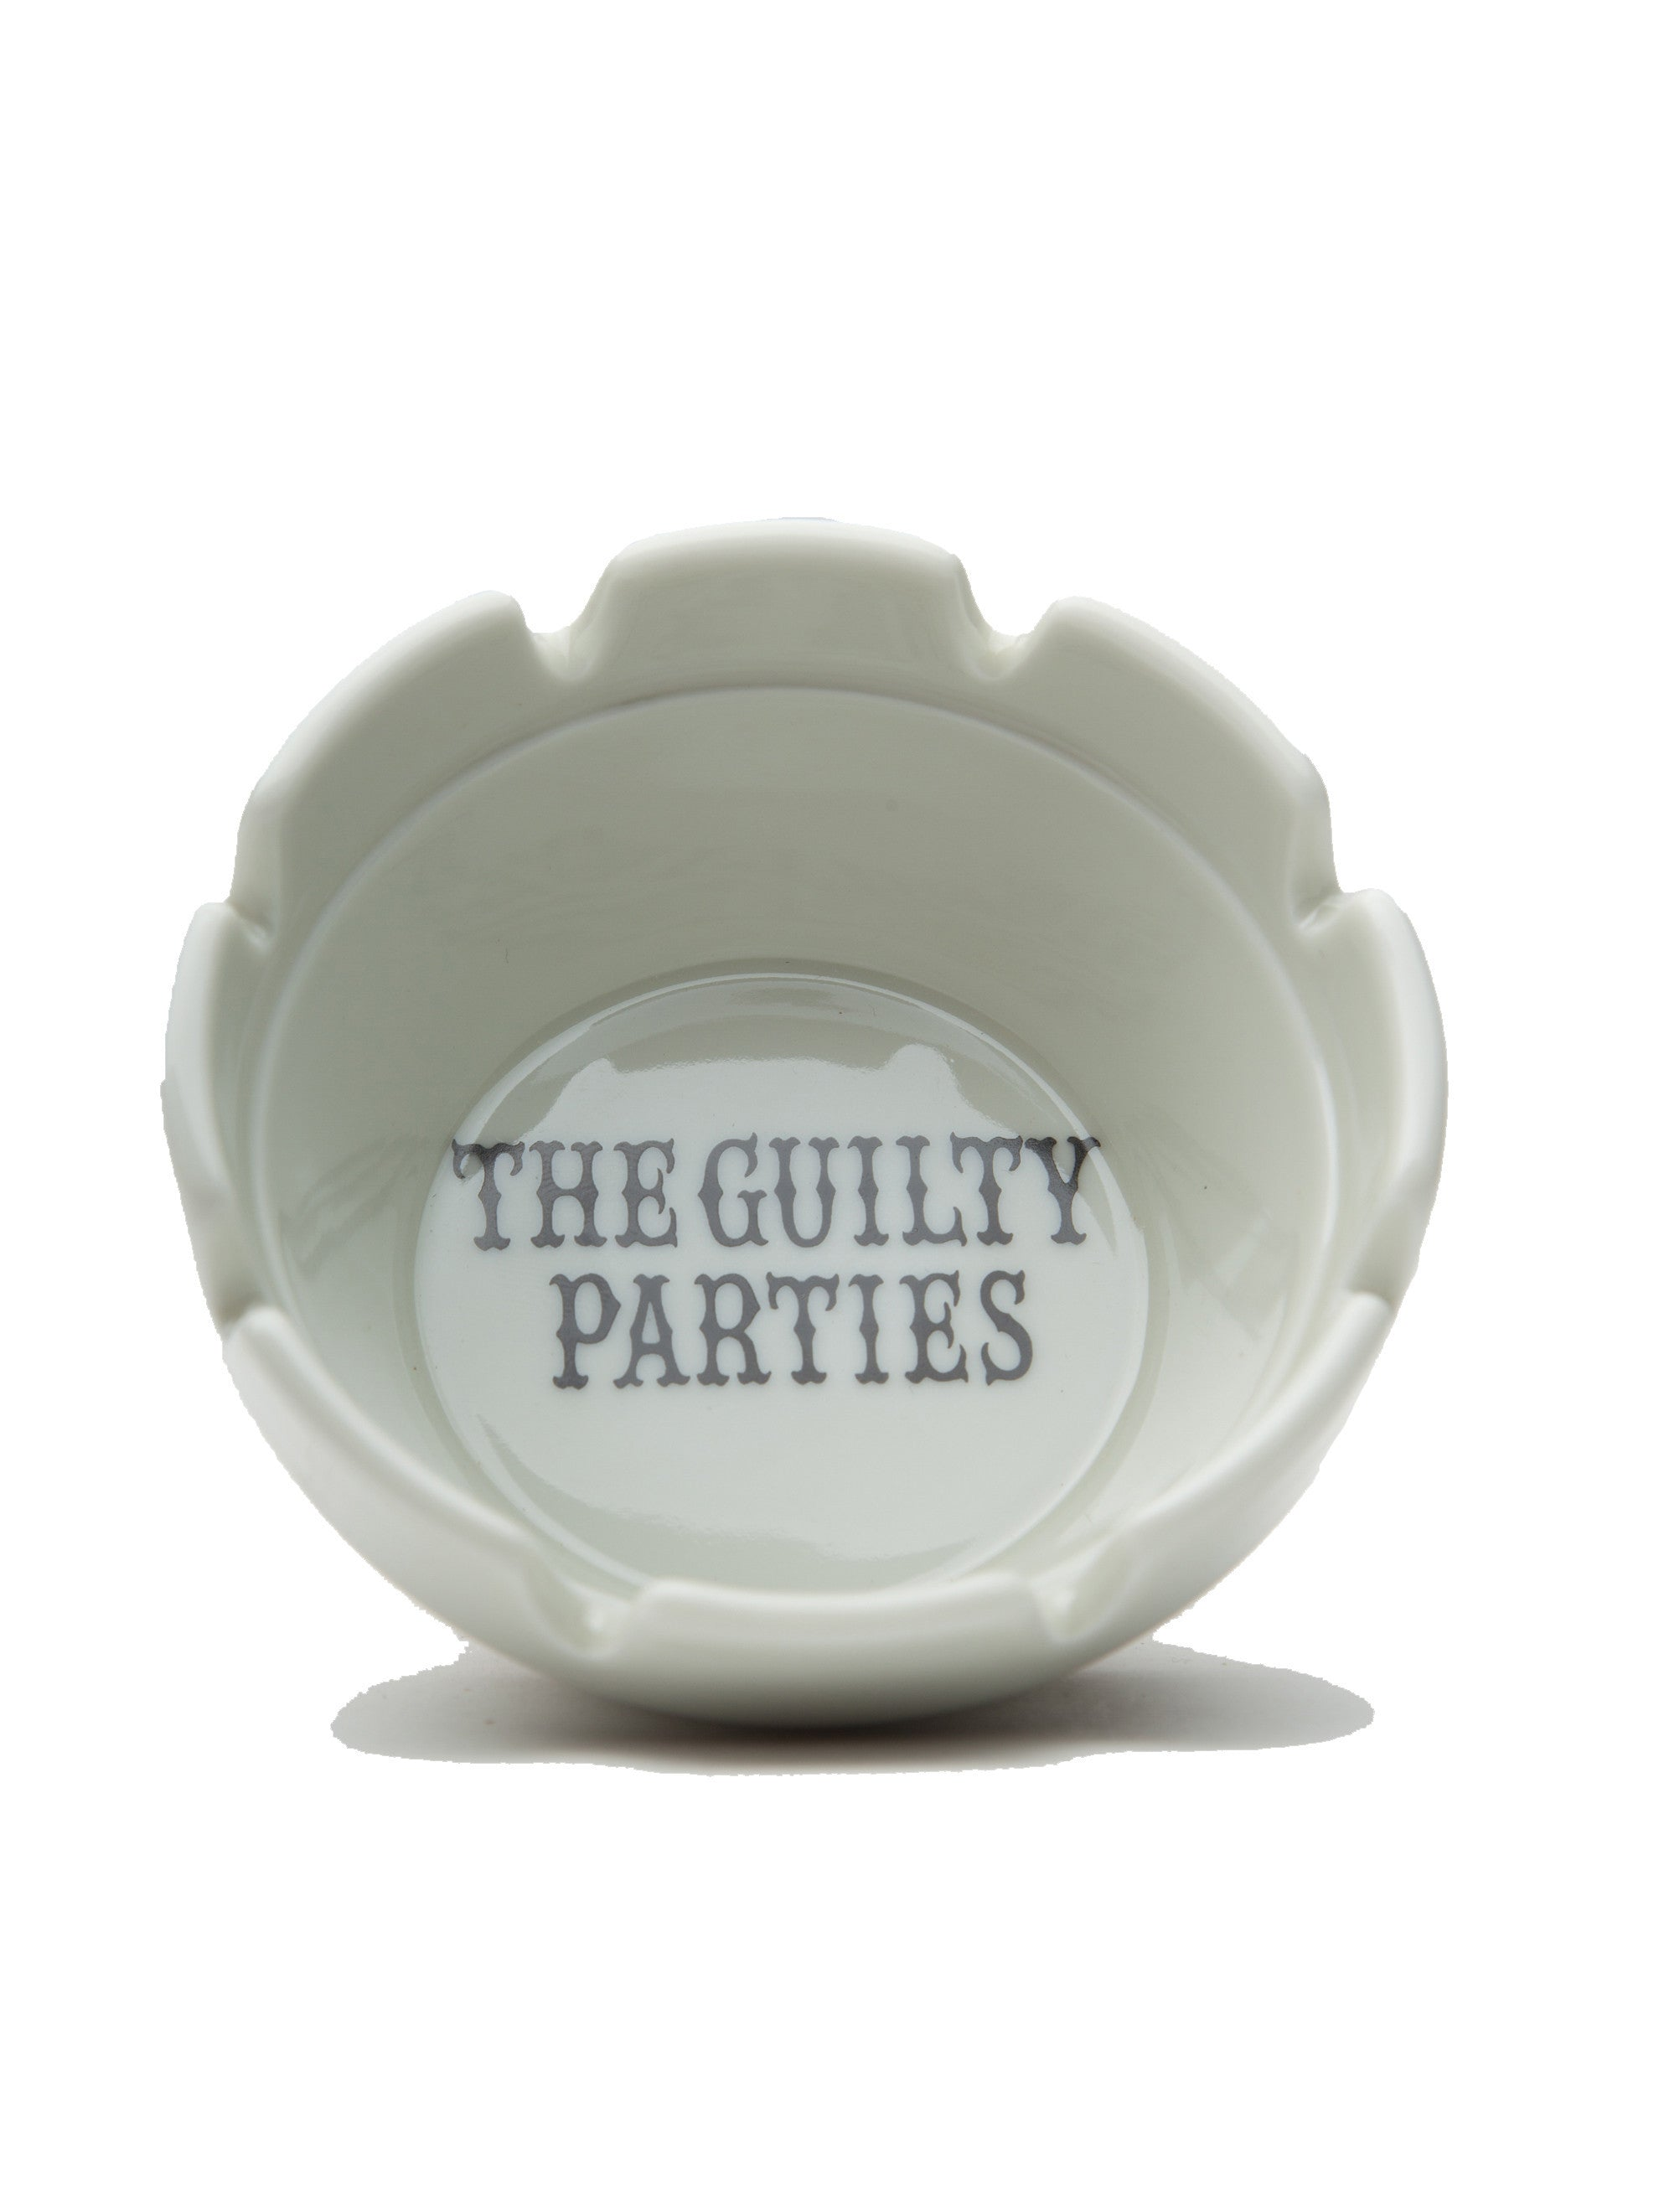 White Guilty Parties Ashtray 2